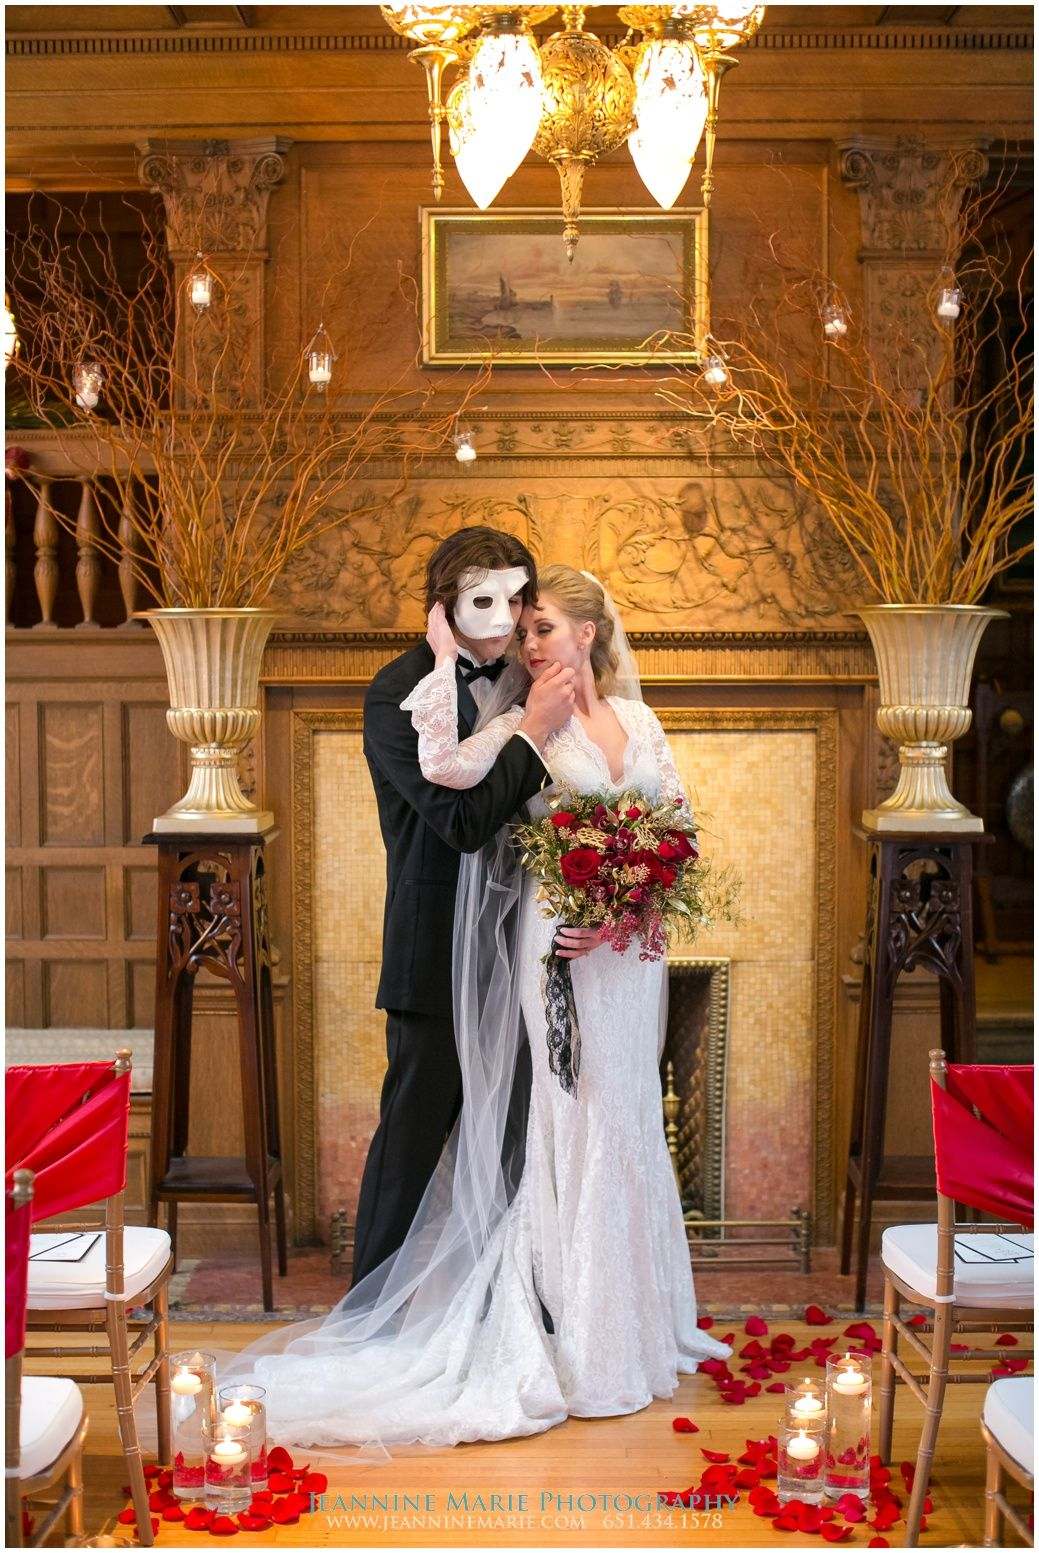 Phantom of the Opera, Van Dusen Mansion, Ask for the Moon Events, Twin Cities wedding vendors, Minneapolis wedding photographer, Jeannine Marie Photography @jeanninemphoto